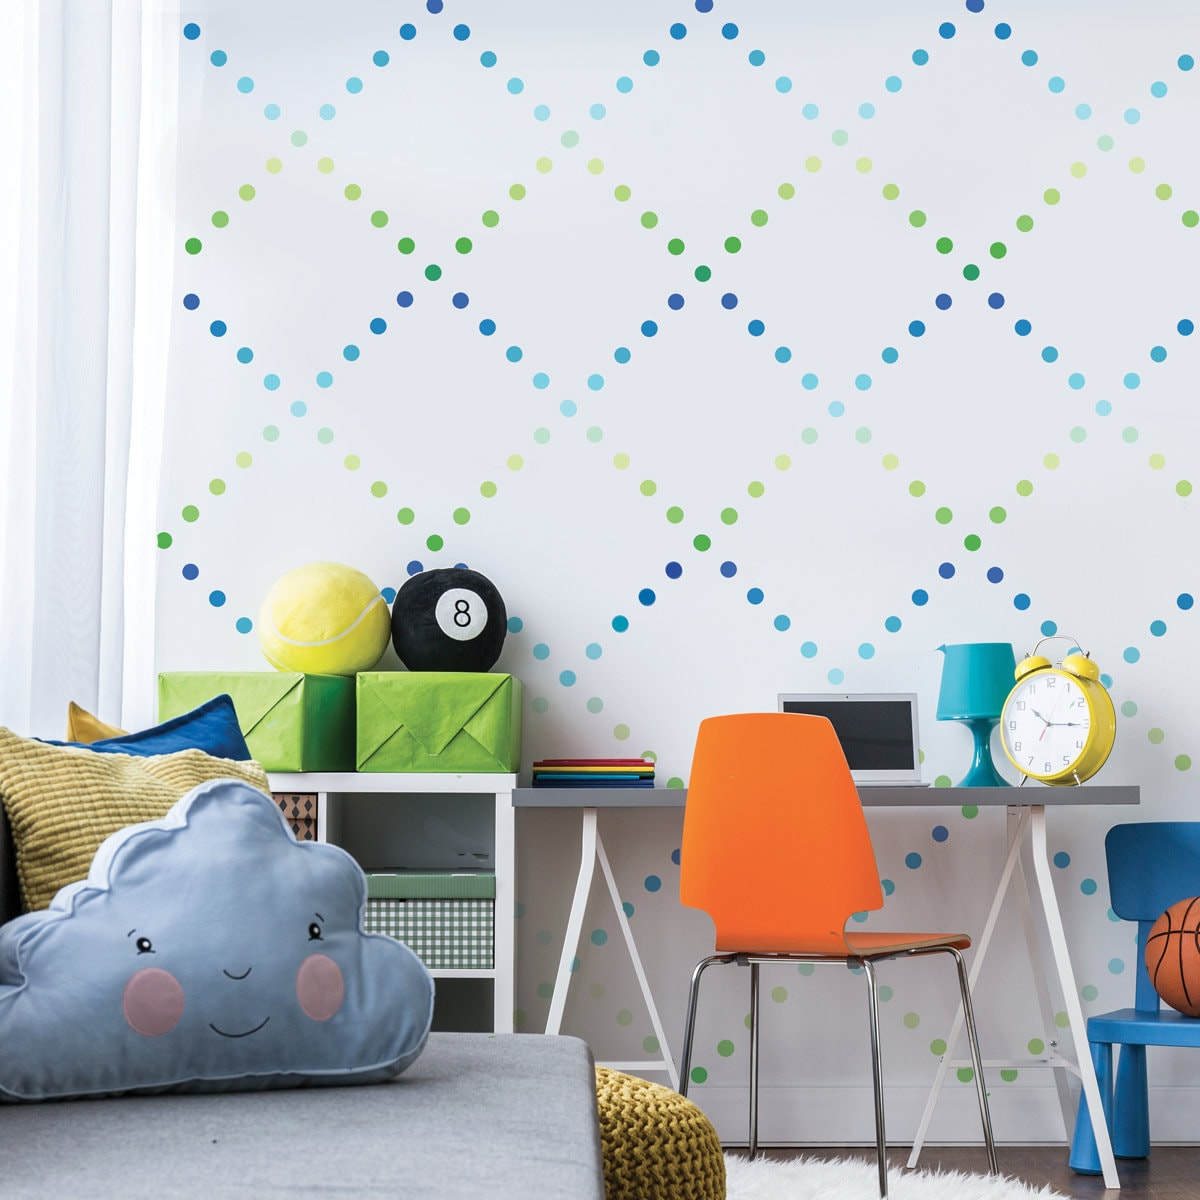 Polka Dots Wall Stickers Nursery Room Decor Removable PVC Stickers 6 sheets